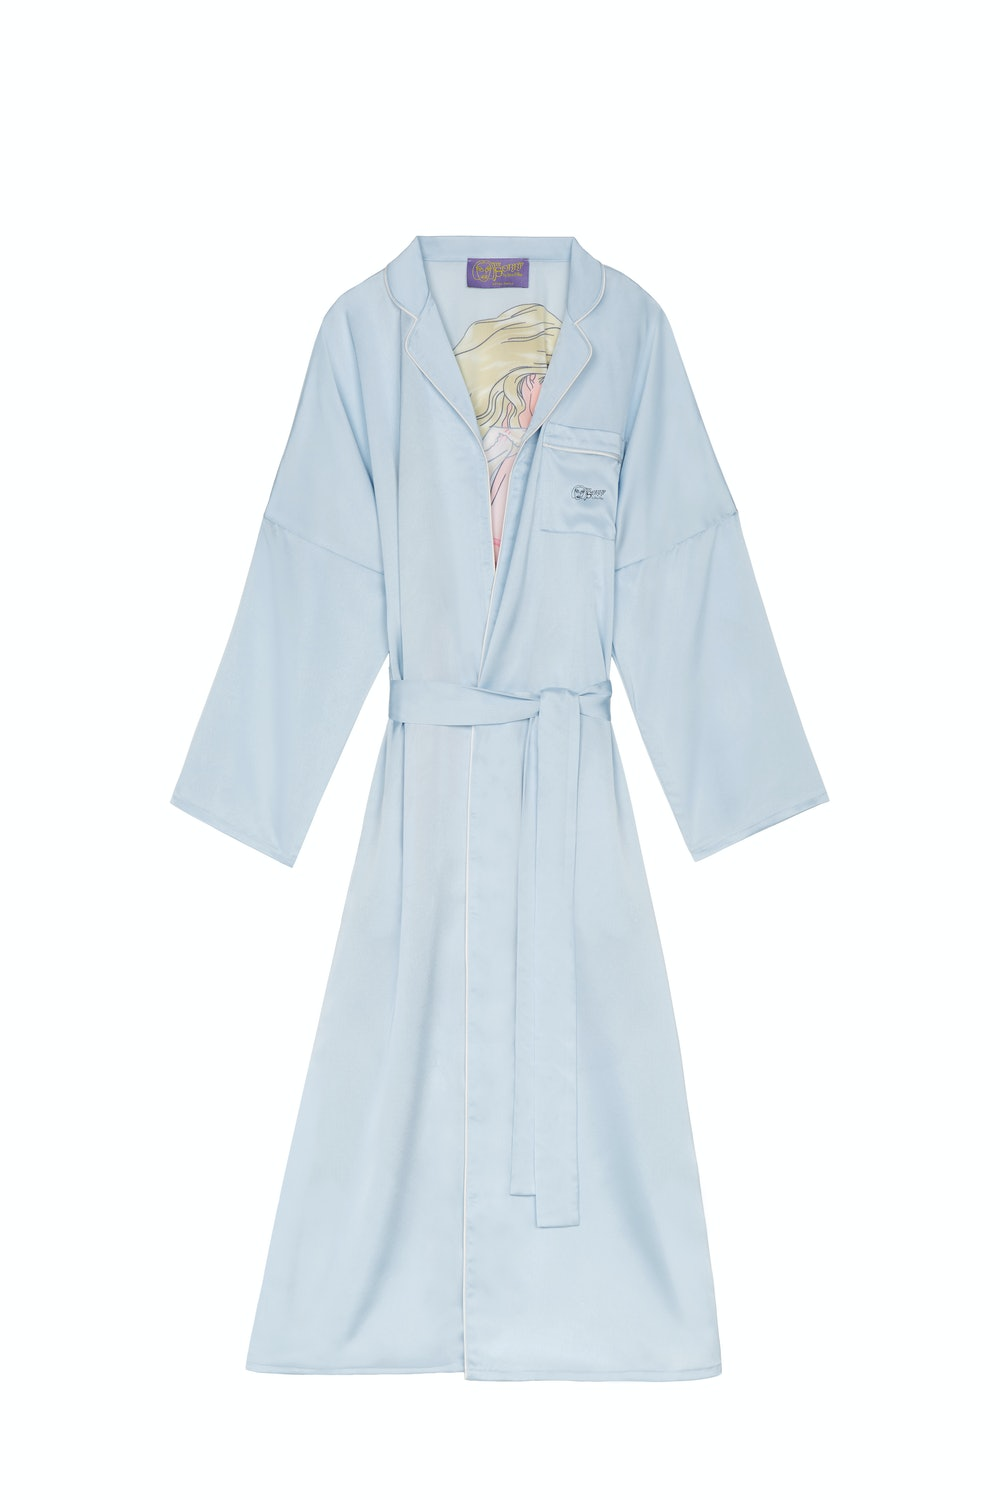 SSENSE Exclusive Blue Graphic Morning Gown